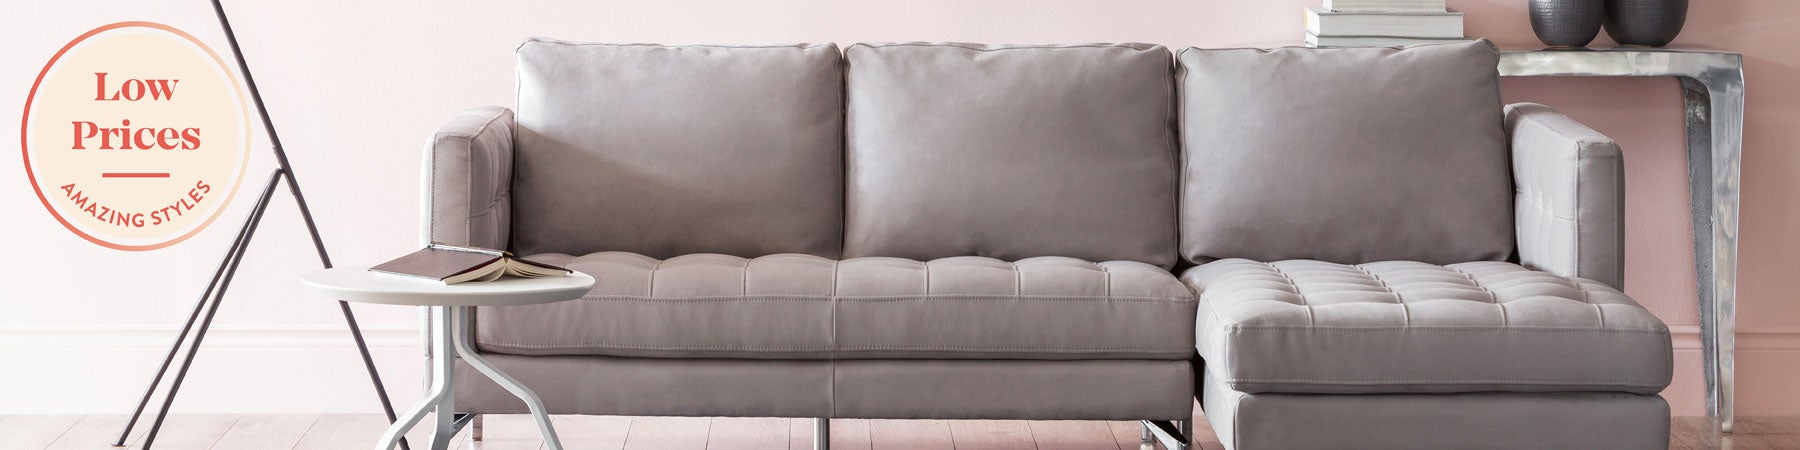 Modern Sectional Sofas Modular Leather Couches Structube